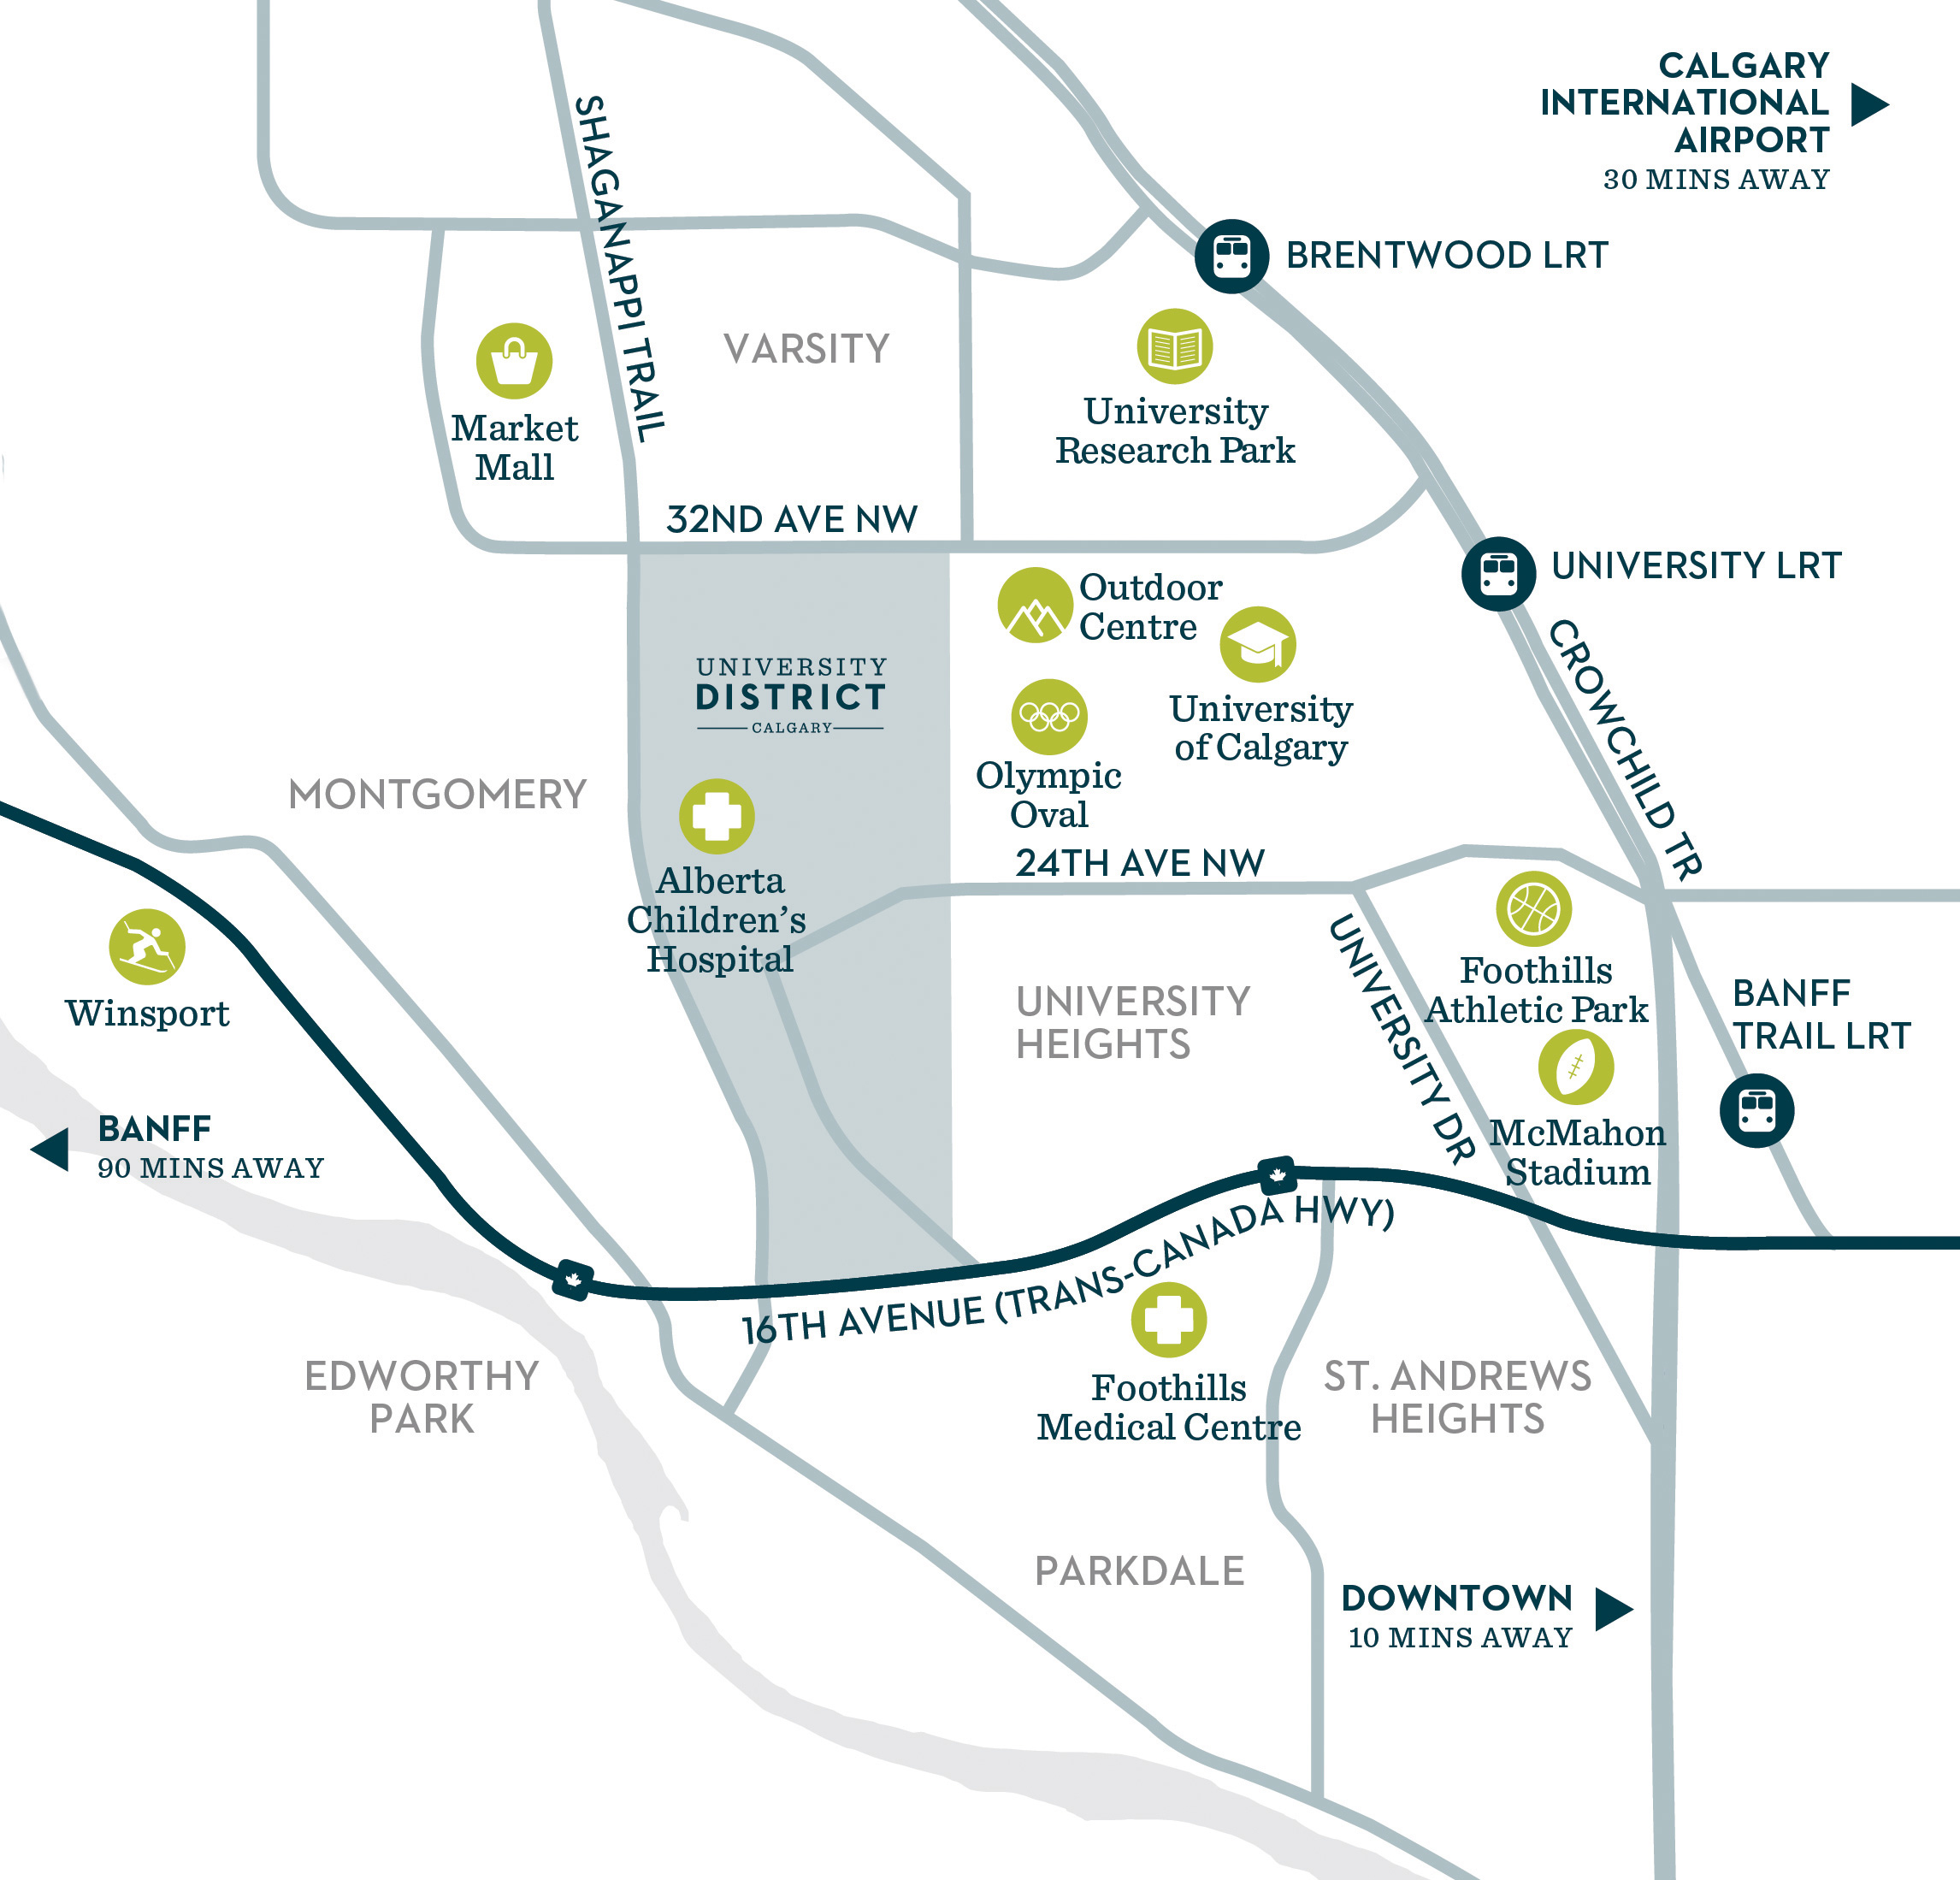 Map of University District Community amenities in NW Calgary